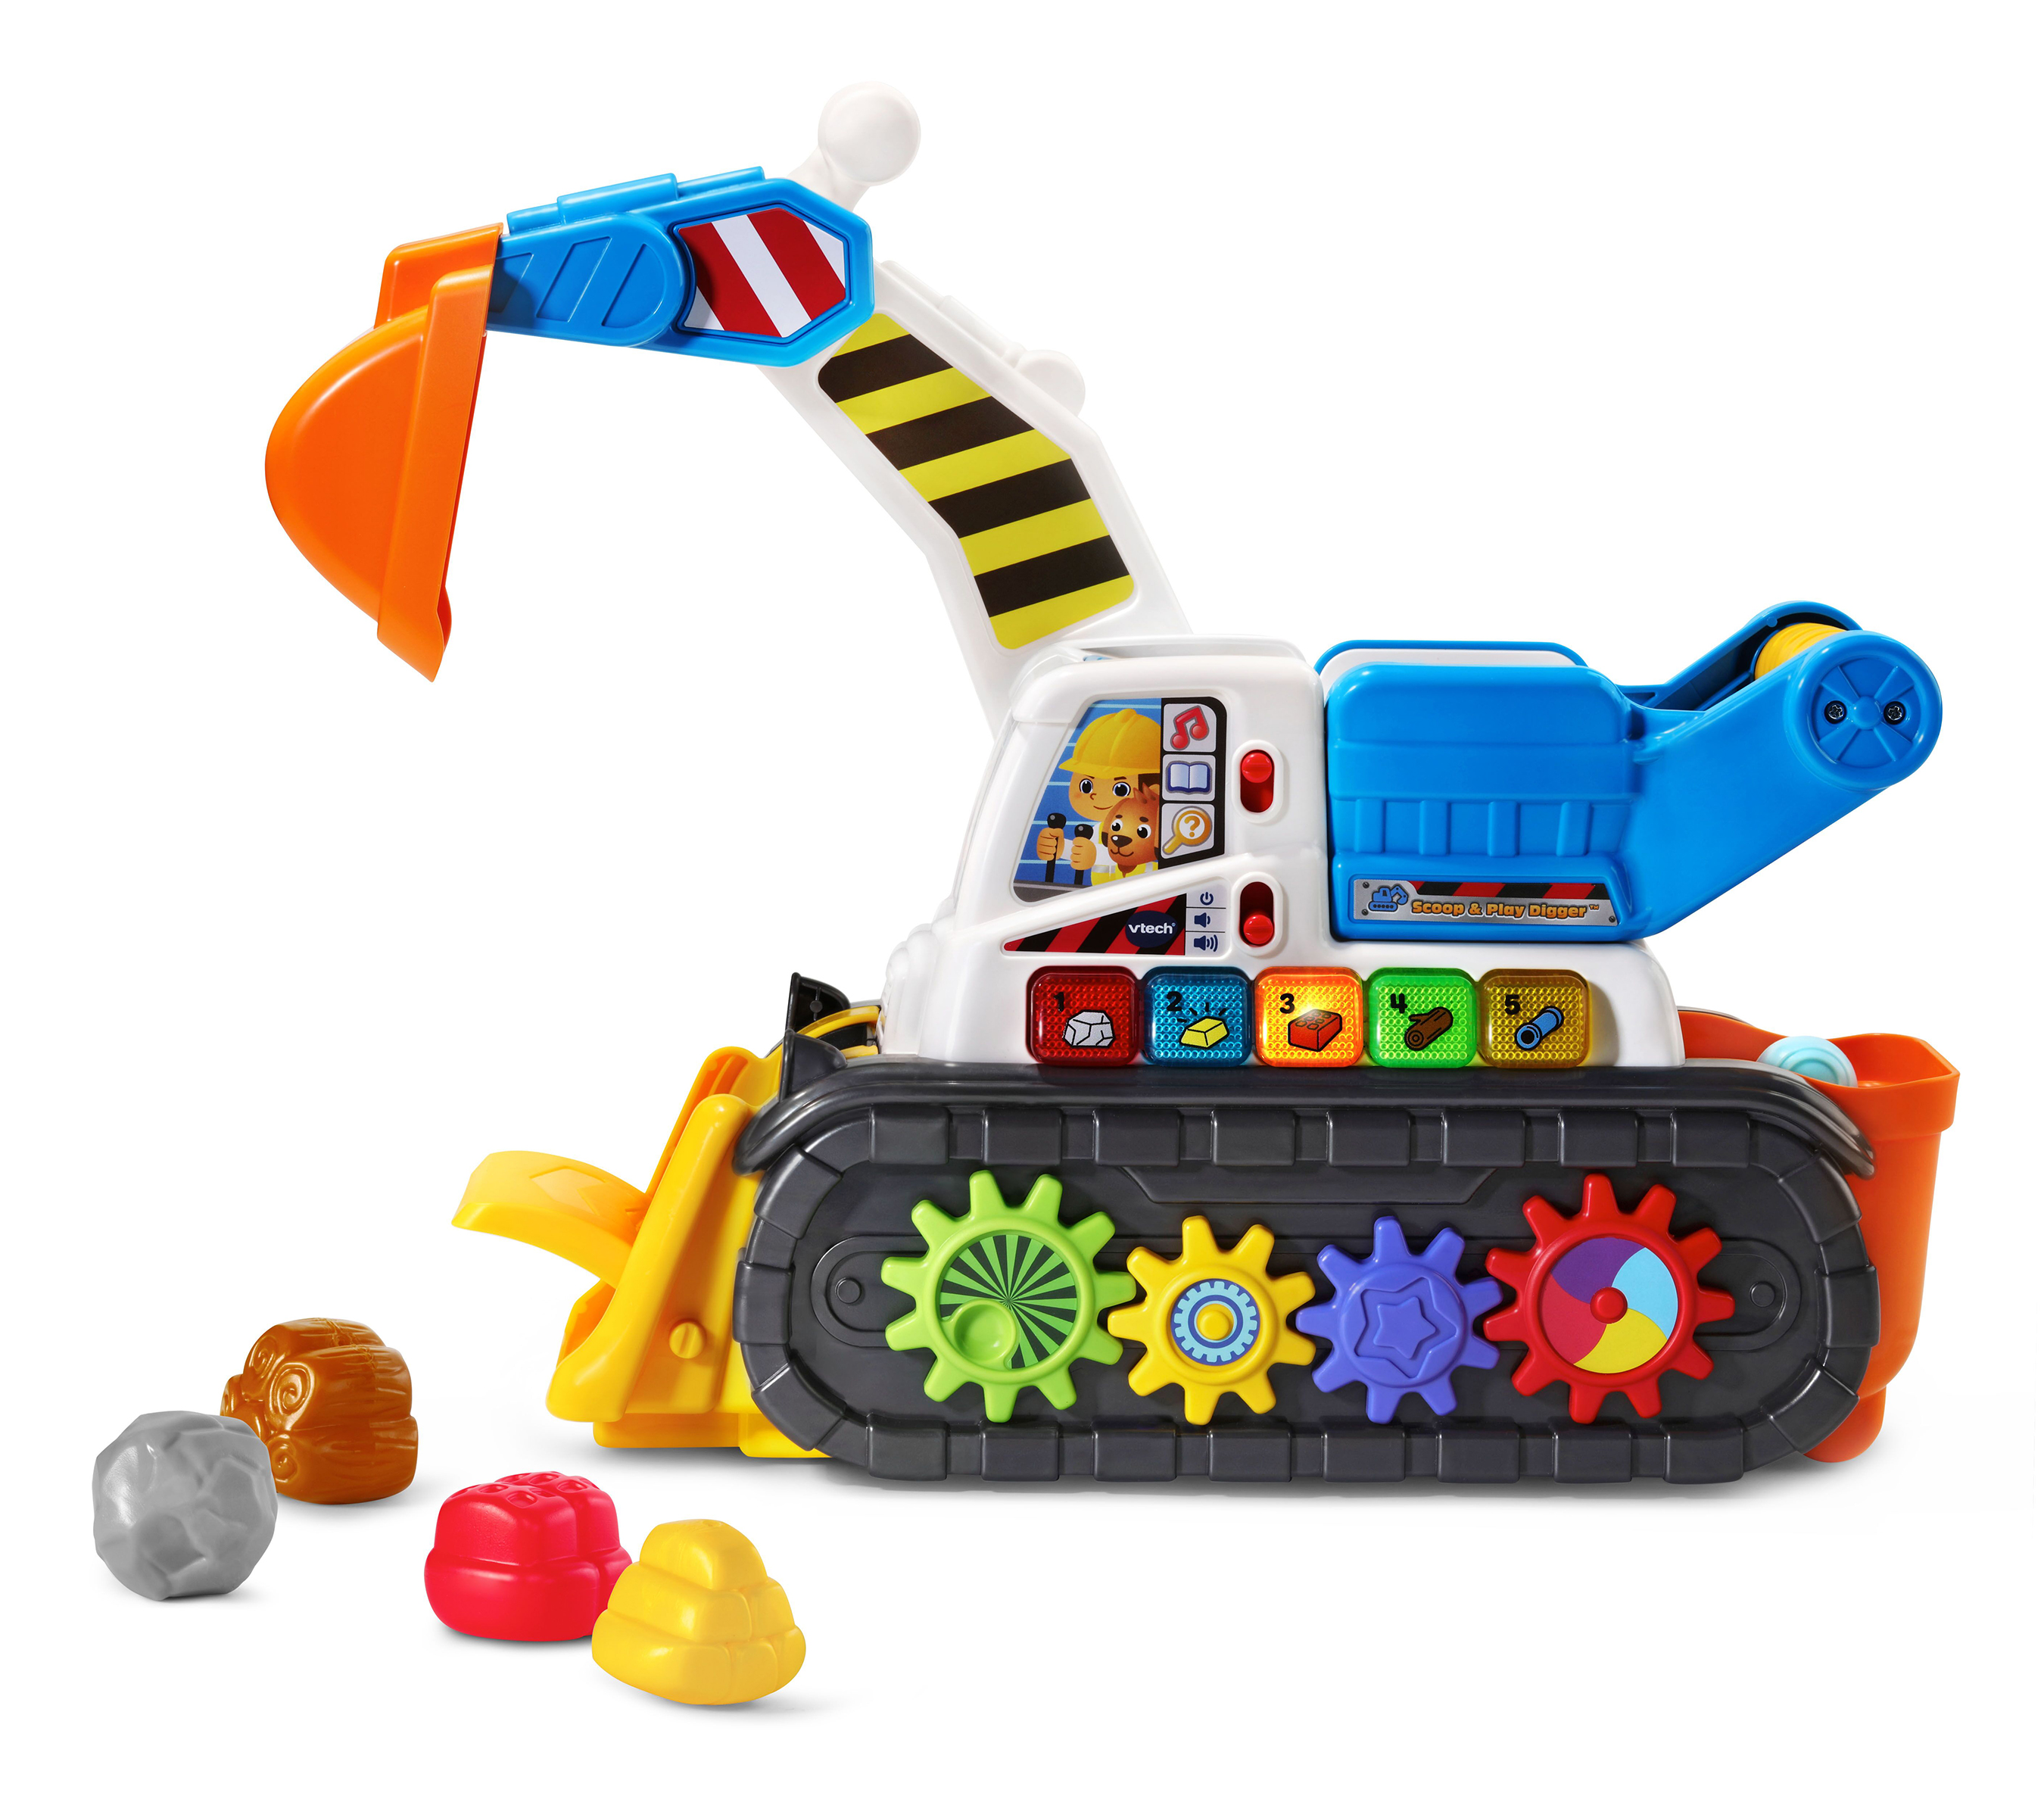 VTech® announces the availability of new infant, toddler and preschool toys, including the Scoop & Play Digger™.